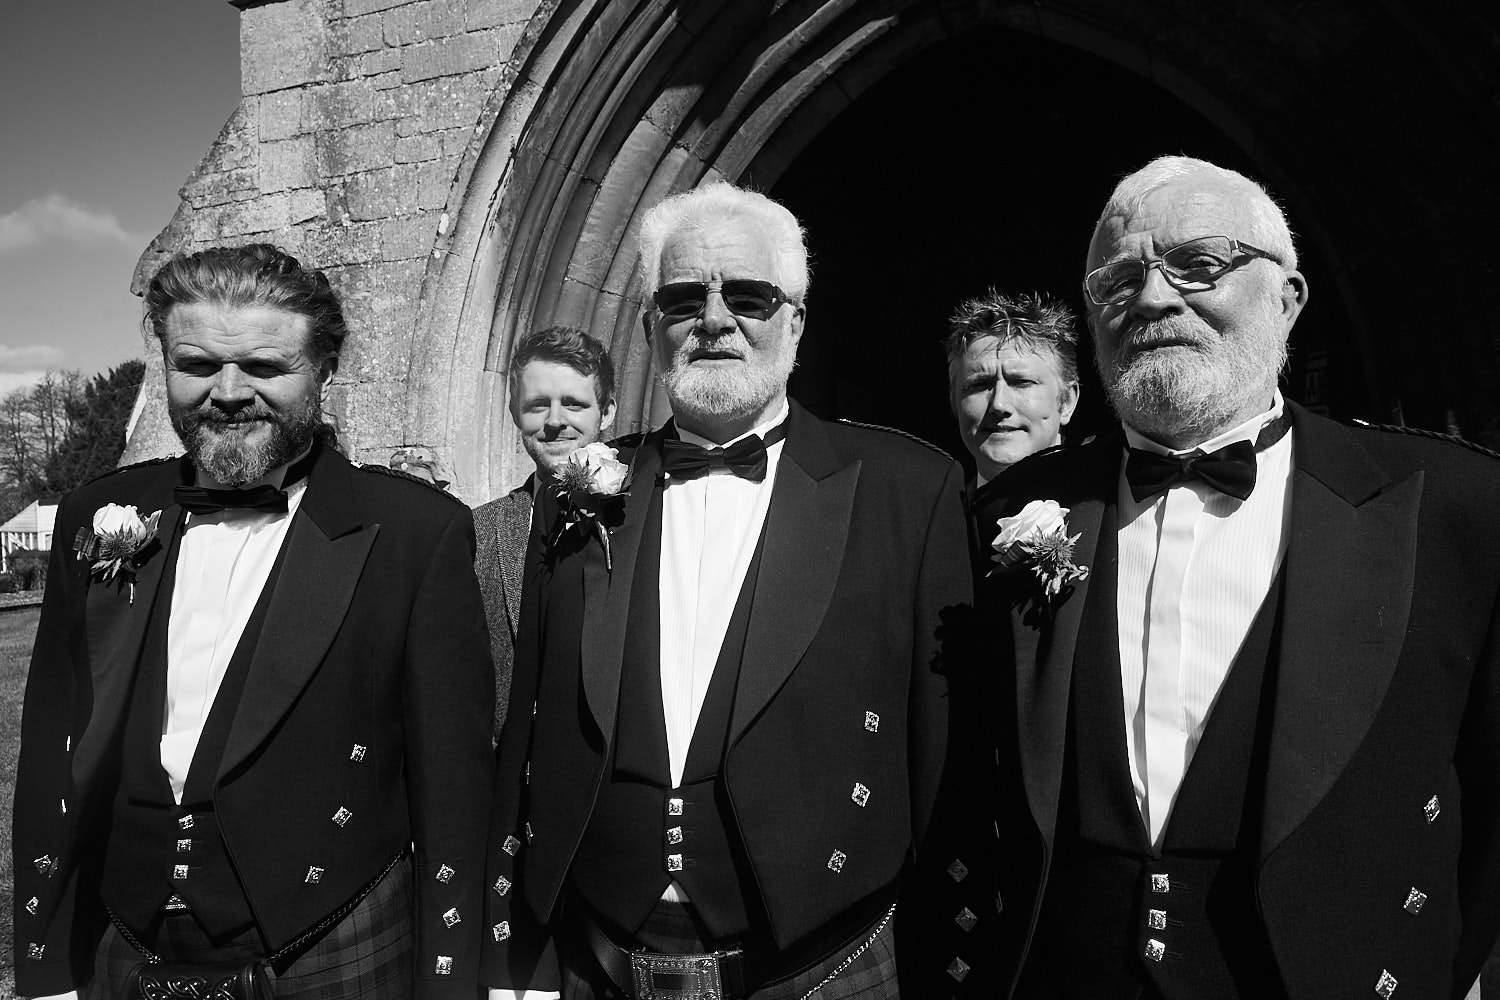 A groom and his groomsmen stand outside Partner Church in Lincolnshire. They are wearing kilts